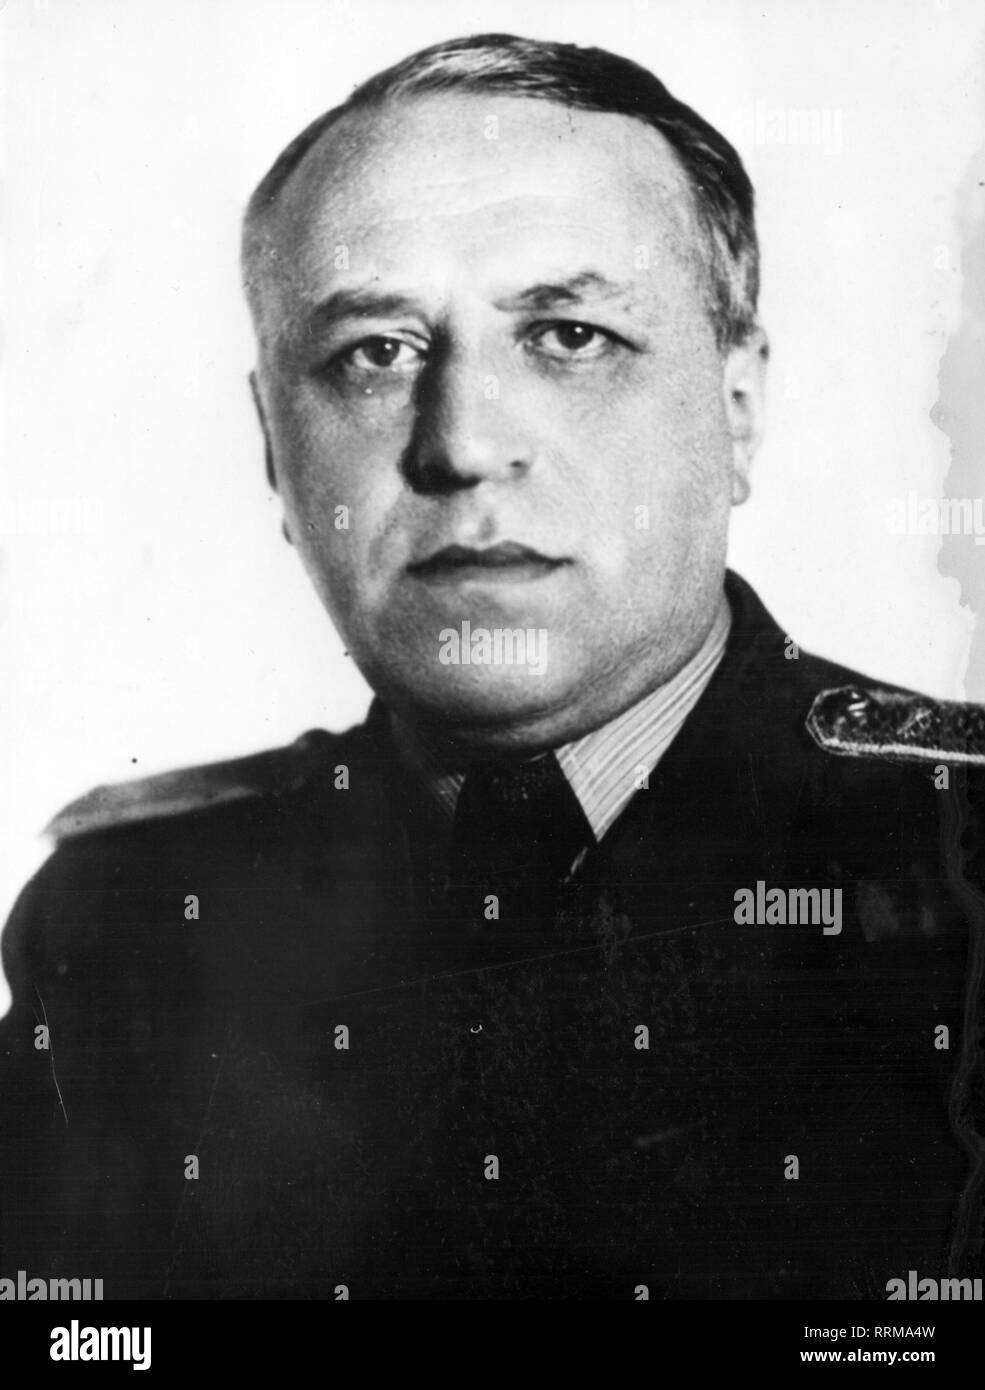 Zorin, Valerian Alexandrovich, 1.1.1902 - 14.1.1986, Soviet diplomat, deputy foreign minister 1947 - 1955, portrait, 1952, Additional-Rights-Clearance-Info-Not-Available - Stock Image